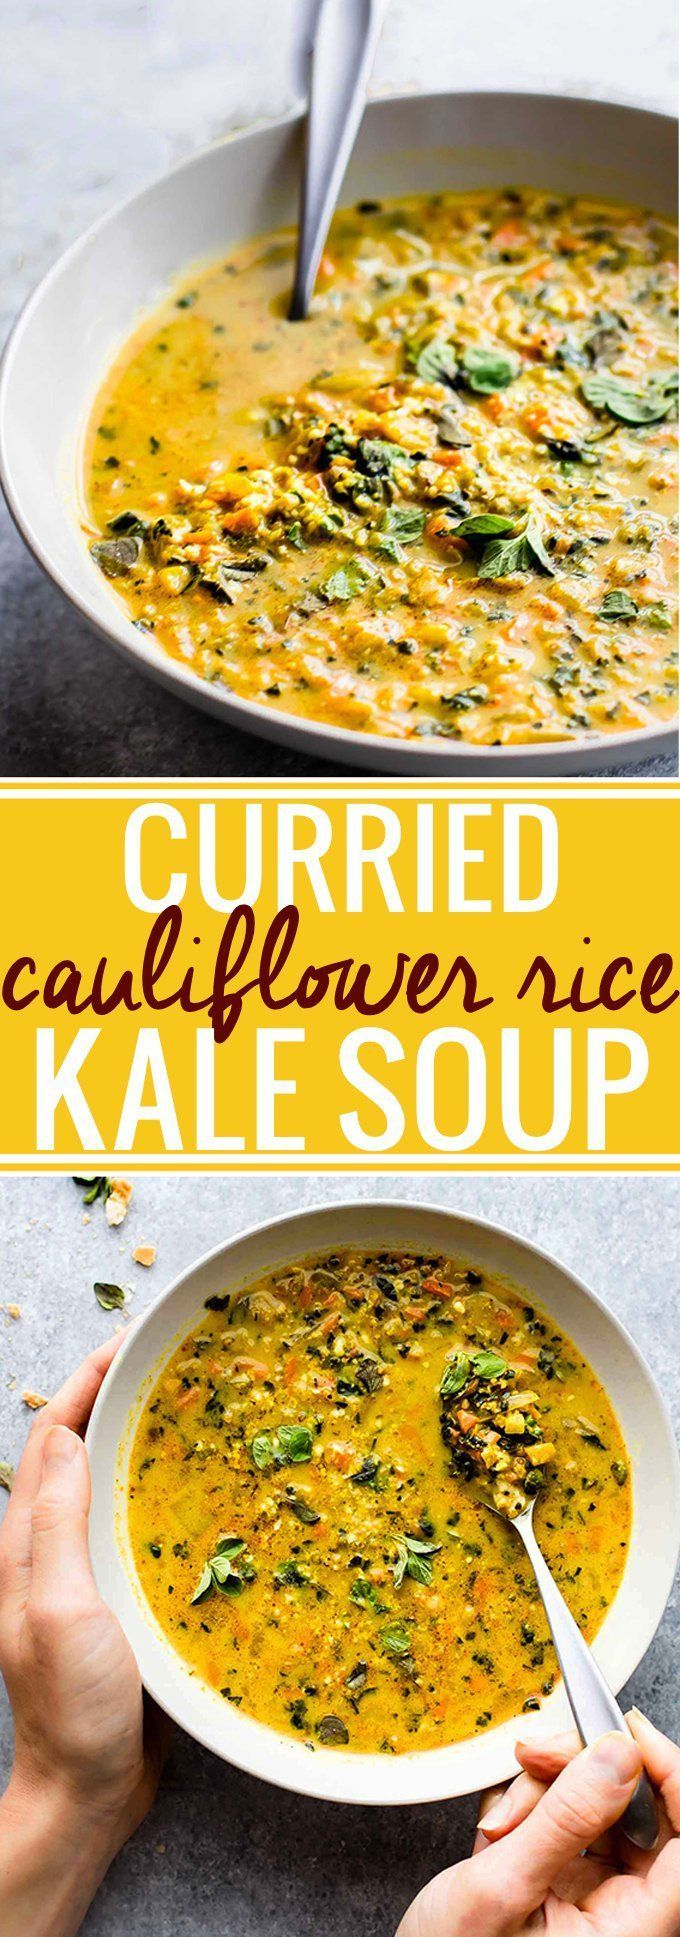 "This Curried Cauliflower Rice Kale Soup is one flavorful healthy soup to keep you warm this season. An easy paleo soup recipe for a nutritious meal-in-a-bowl. Roasted curried cauliflower ""rice"" with kale and even more veggies to fill your bowl! A delicious vegetarian soup to make again again! Vegan and Whole30 friendly!"